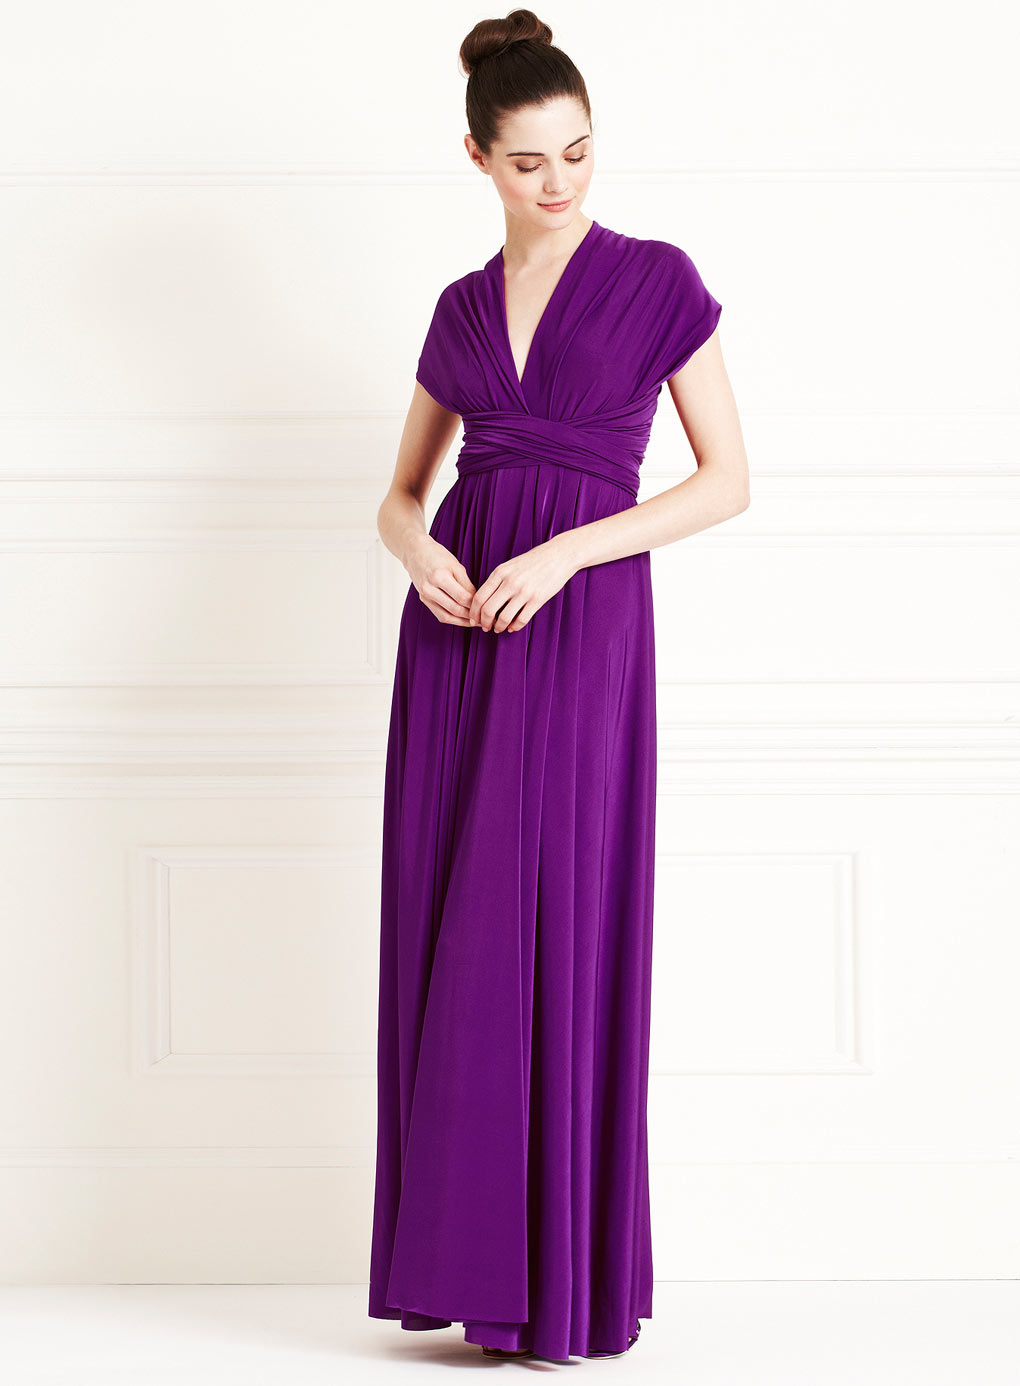 Bridesmaid dress front |Pinned from PinTo for iPad| | My wedding ...